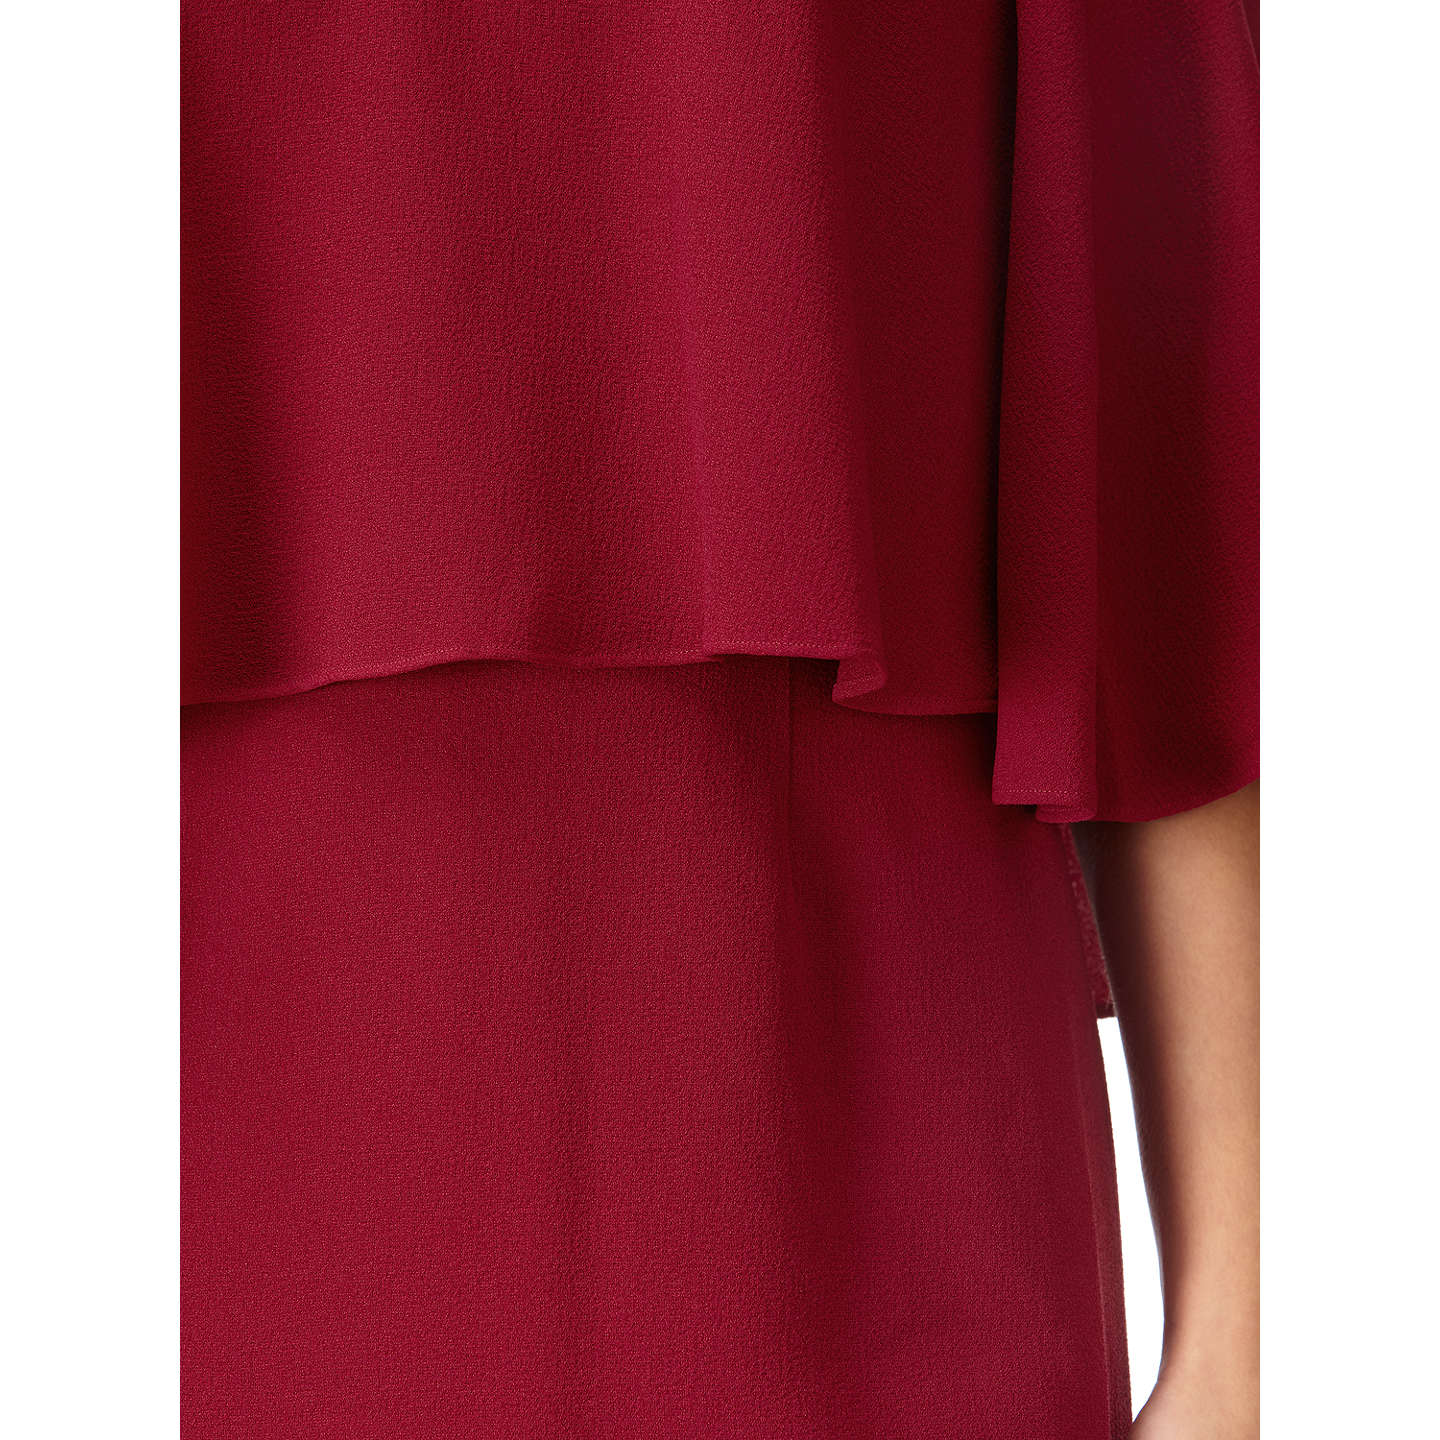 BuyAdrianna Papell Cold Shoulder Sheath Dress, Cranberry, 10 Online at johnlewis.com